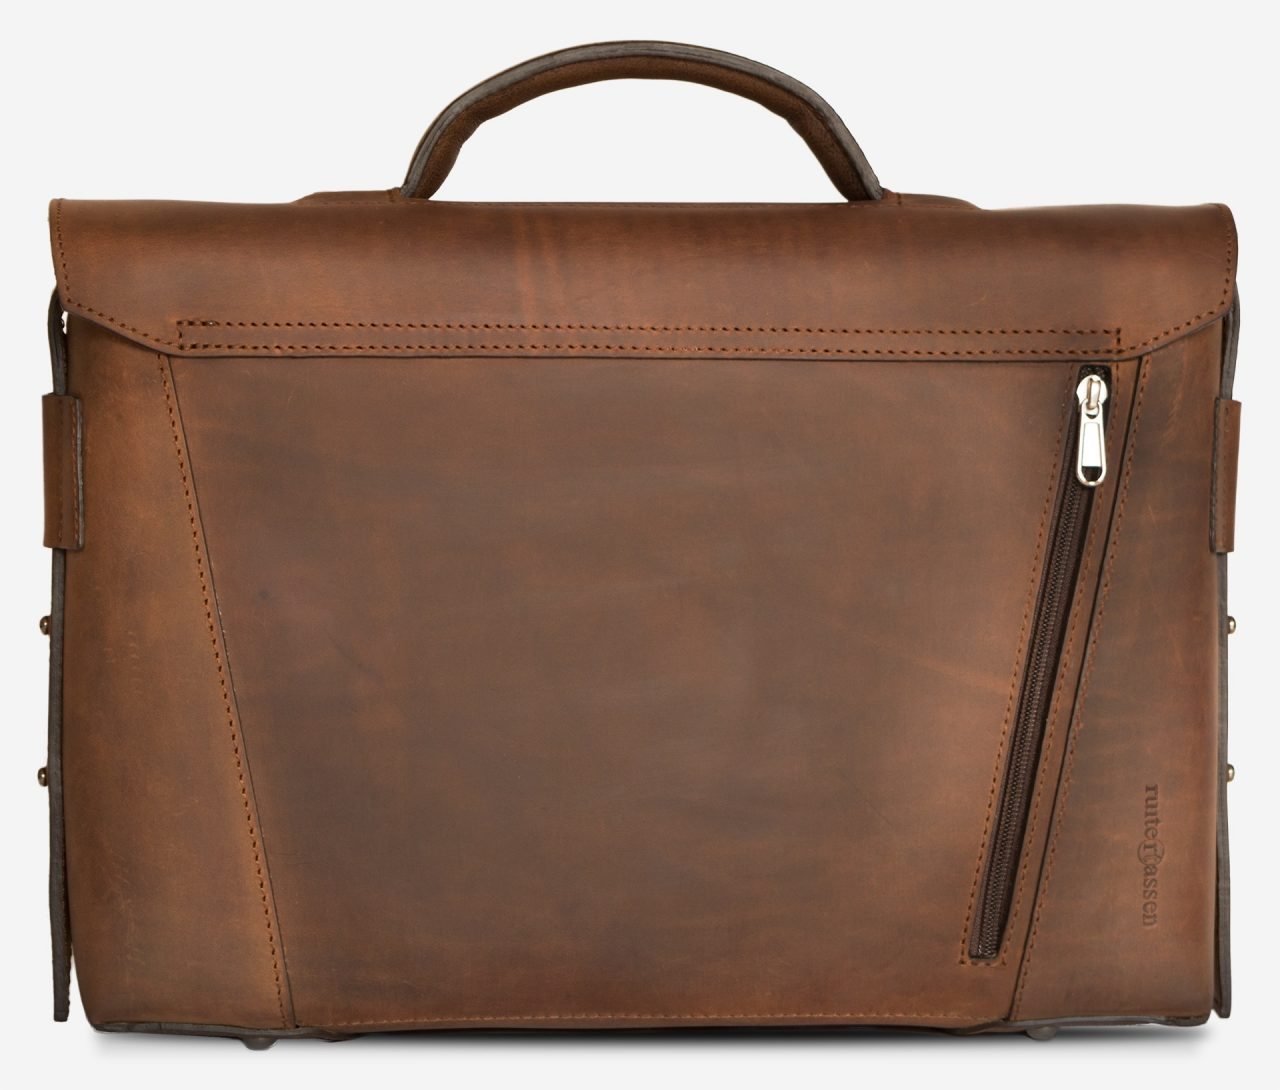 Back view of the vegetable-tanned brown leather briefcase bag with back pocket.